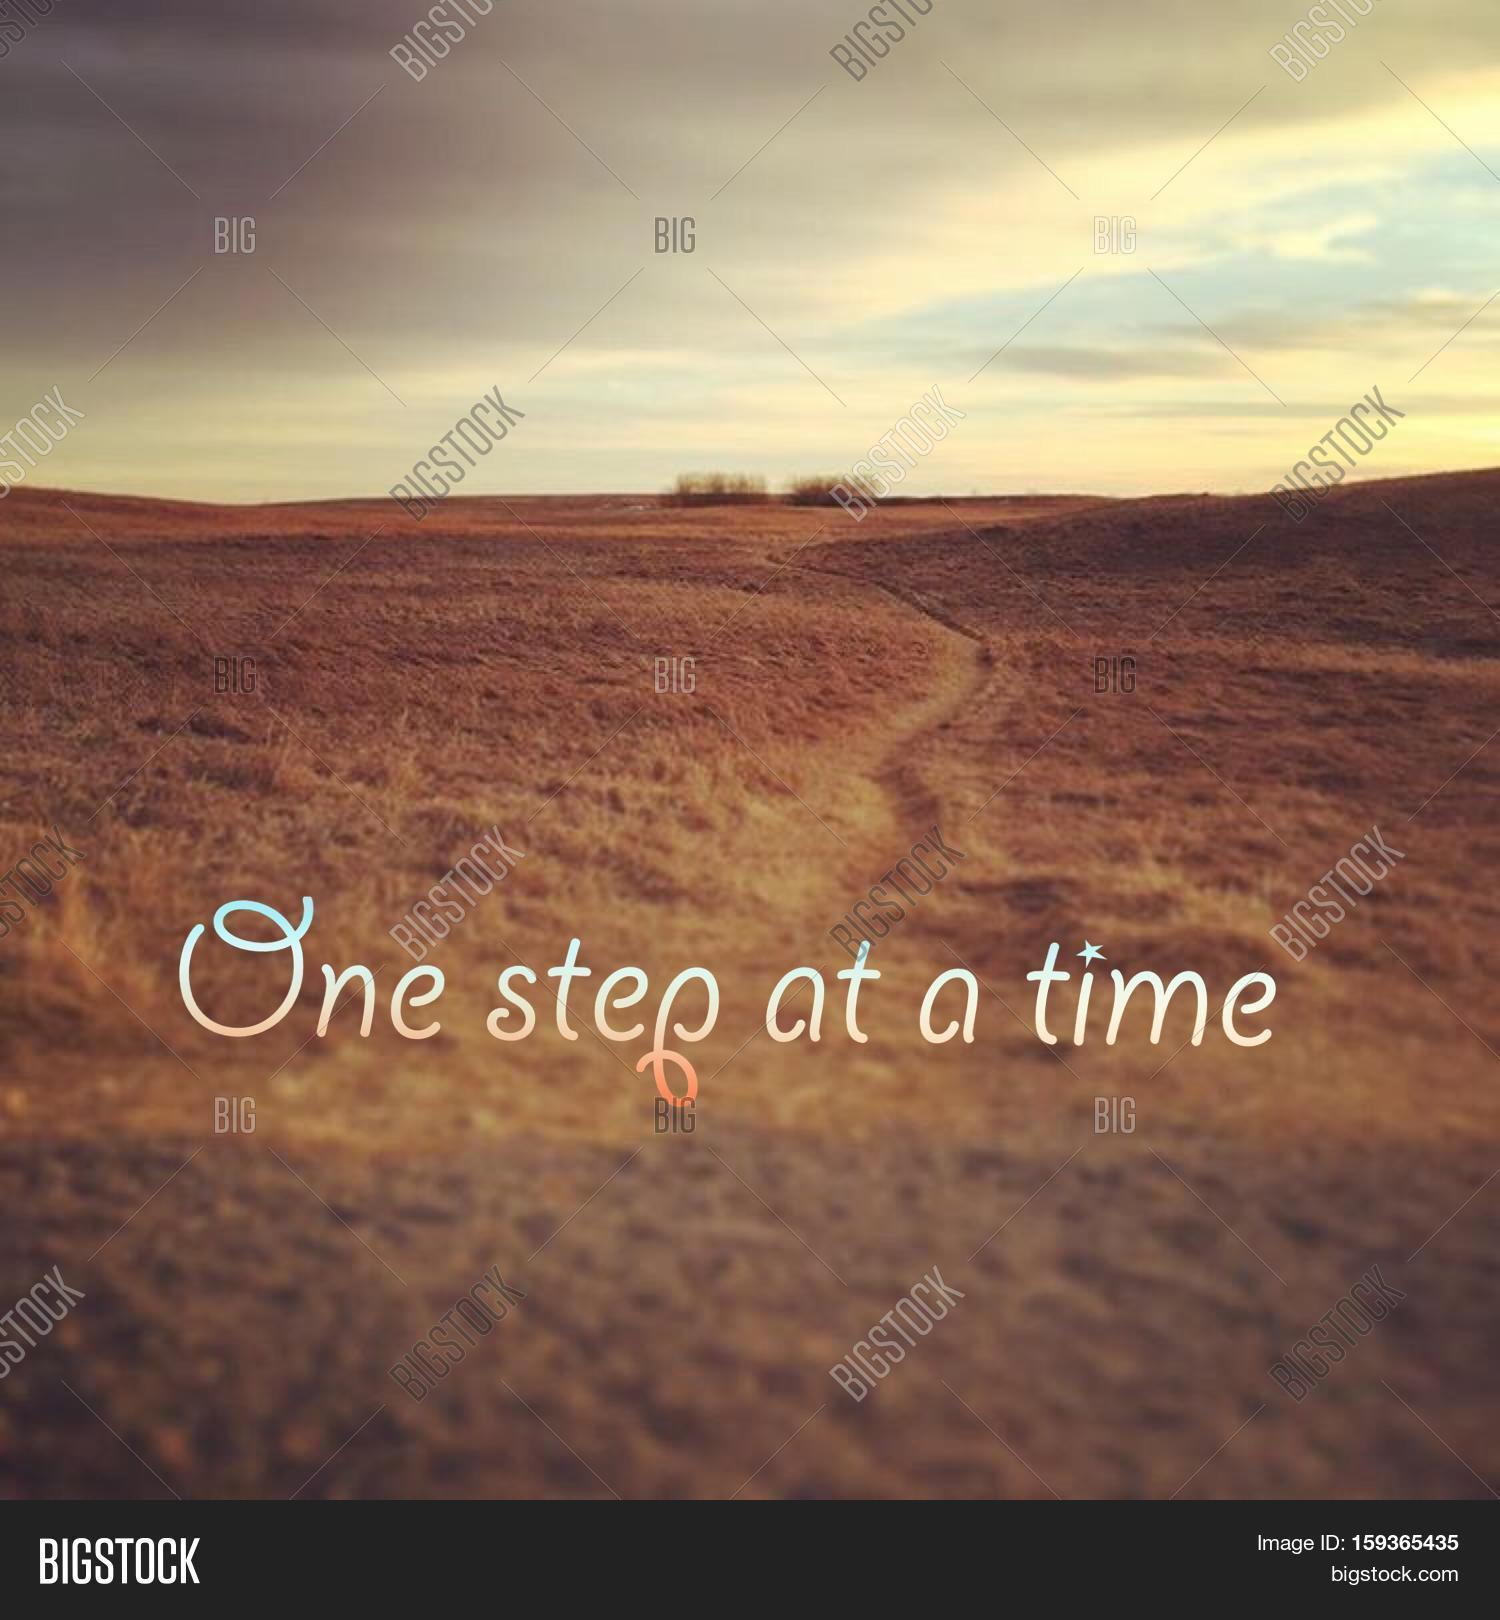 inspirational quote on image photo trial bigstock